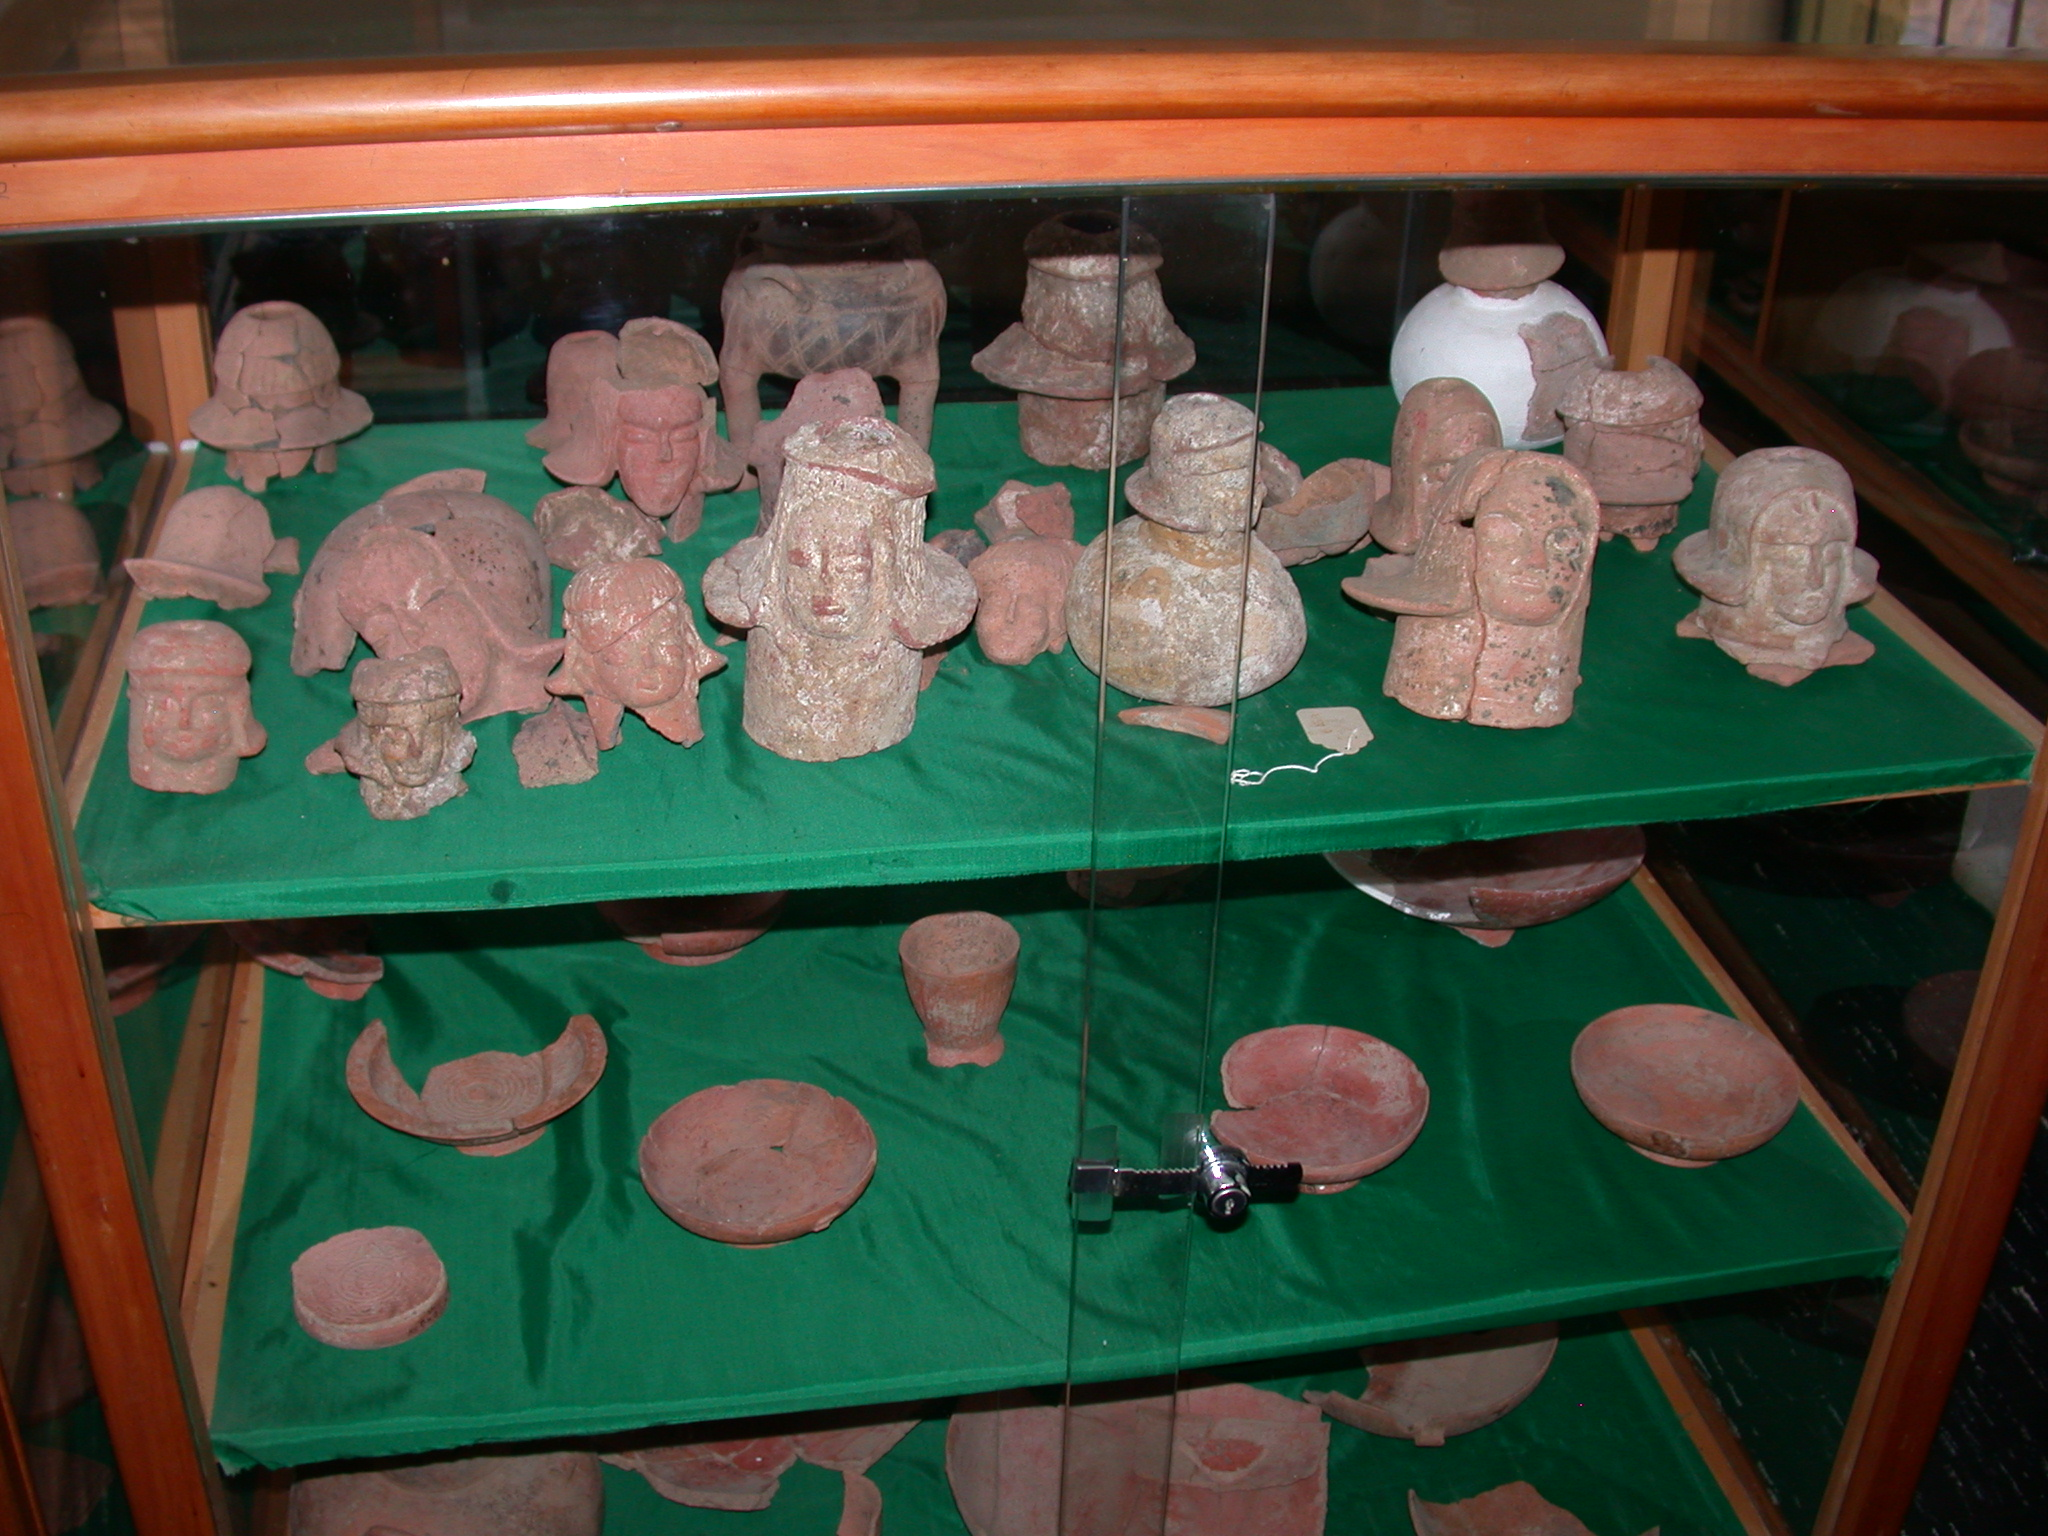 Figurines, Dishes, and Other Items, Axum Museum, Axum, Tigrai, Ethiopia